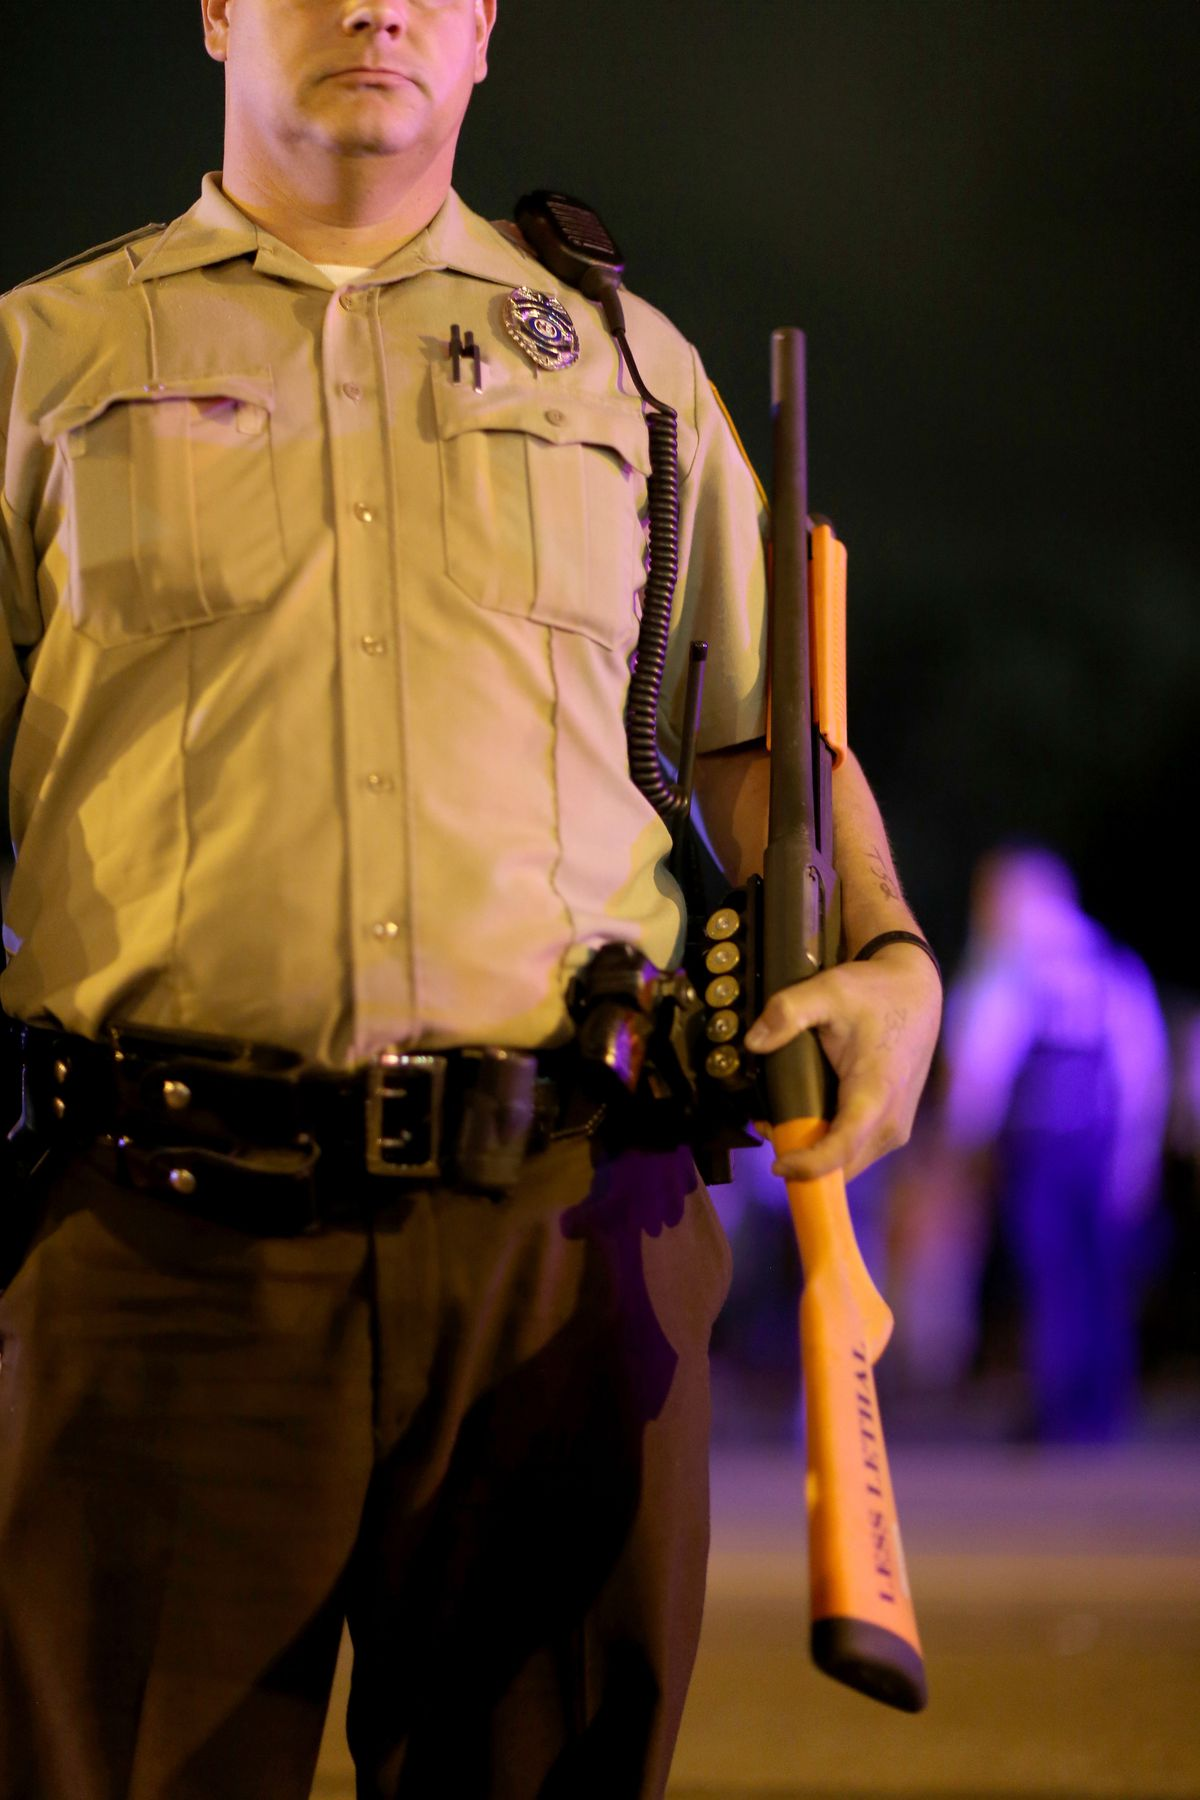 A police officer stands with a shotgun in Ferguson, Missouri.